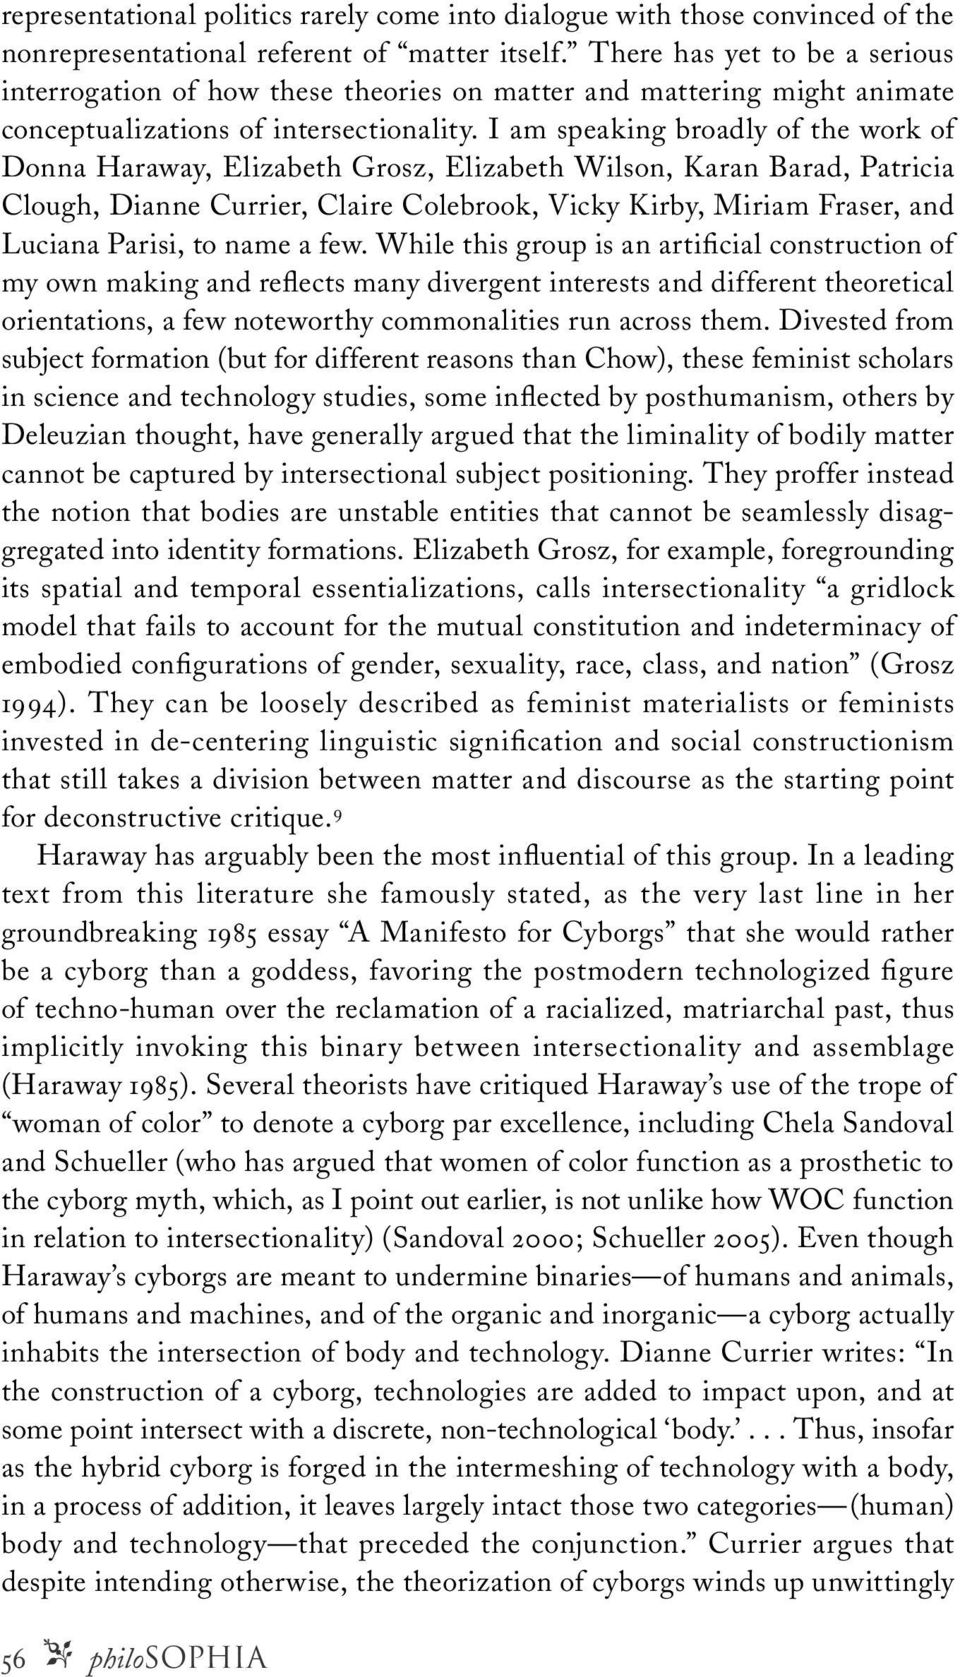 I am speaking broadly of the work of Donna Haraway, Elizabeth Grosz, Elizabeth Wilson, Karan Barad, Patricia Clough, Dianne Currier, Claire Colebrook, Vicky Kirby, Miriam Fraser, and Luciana Parisi,